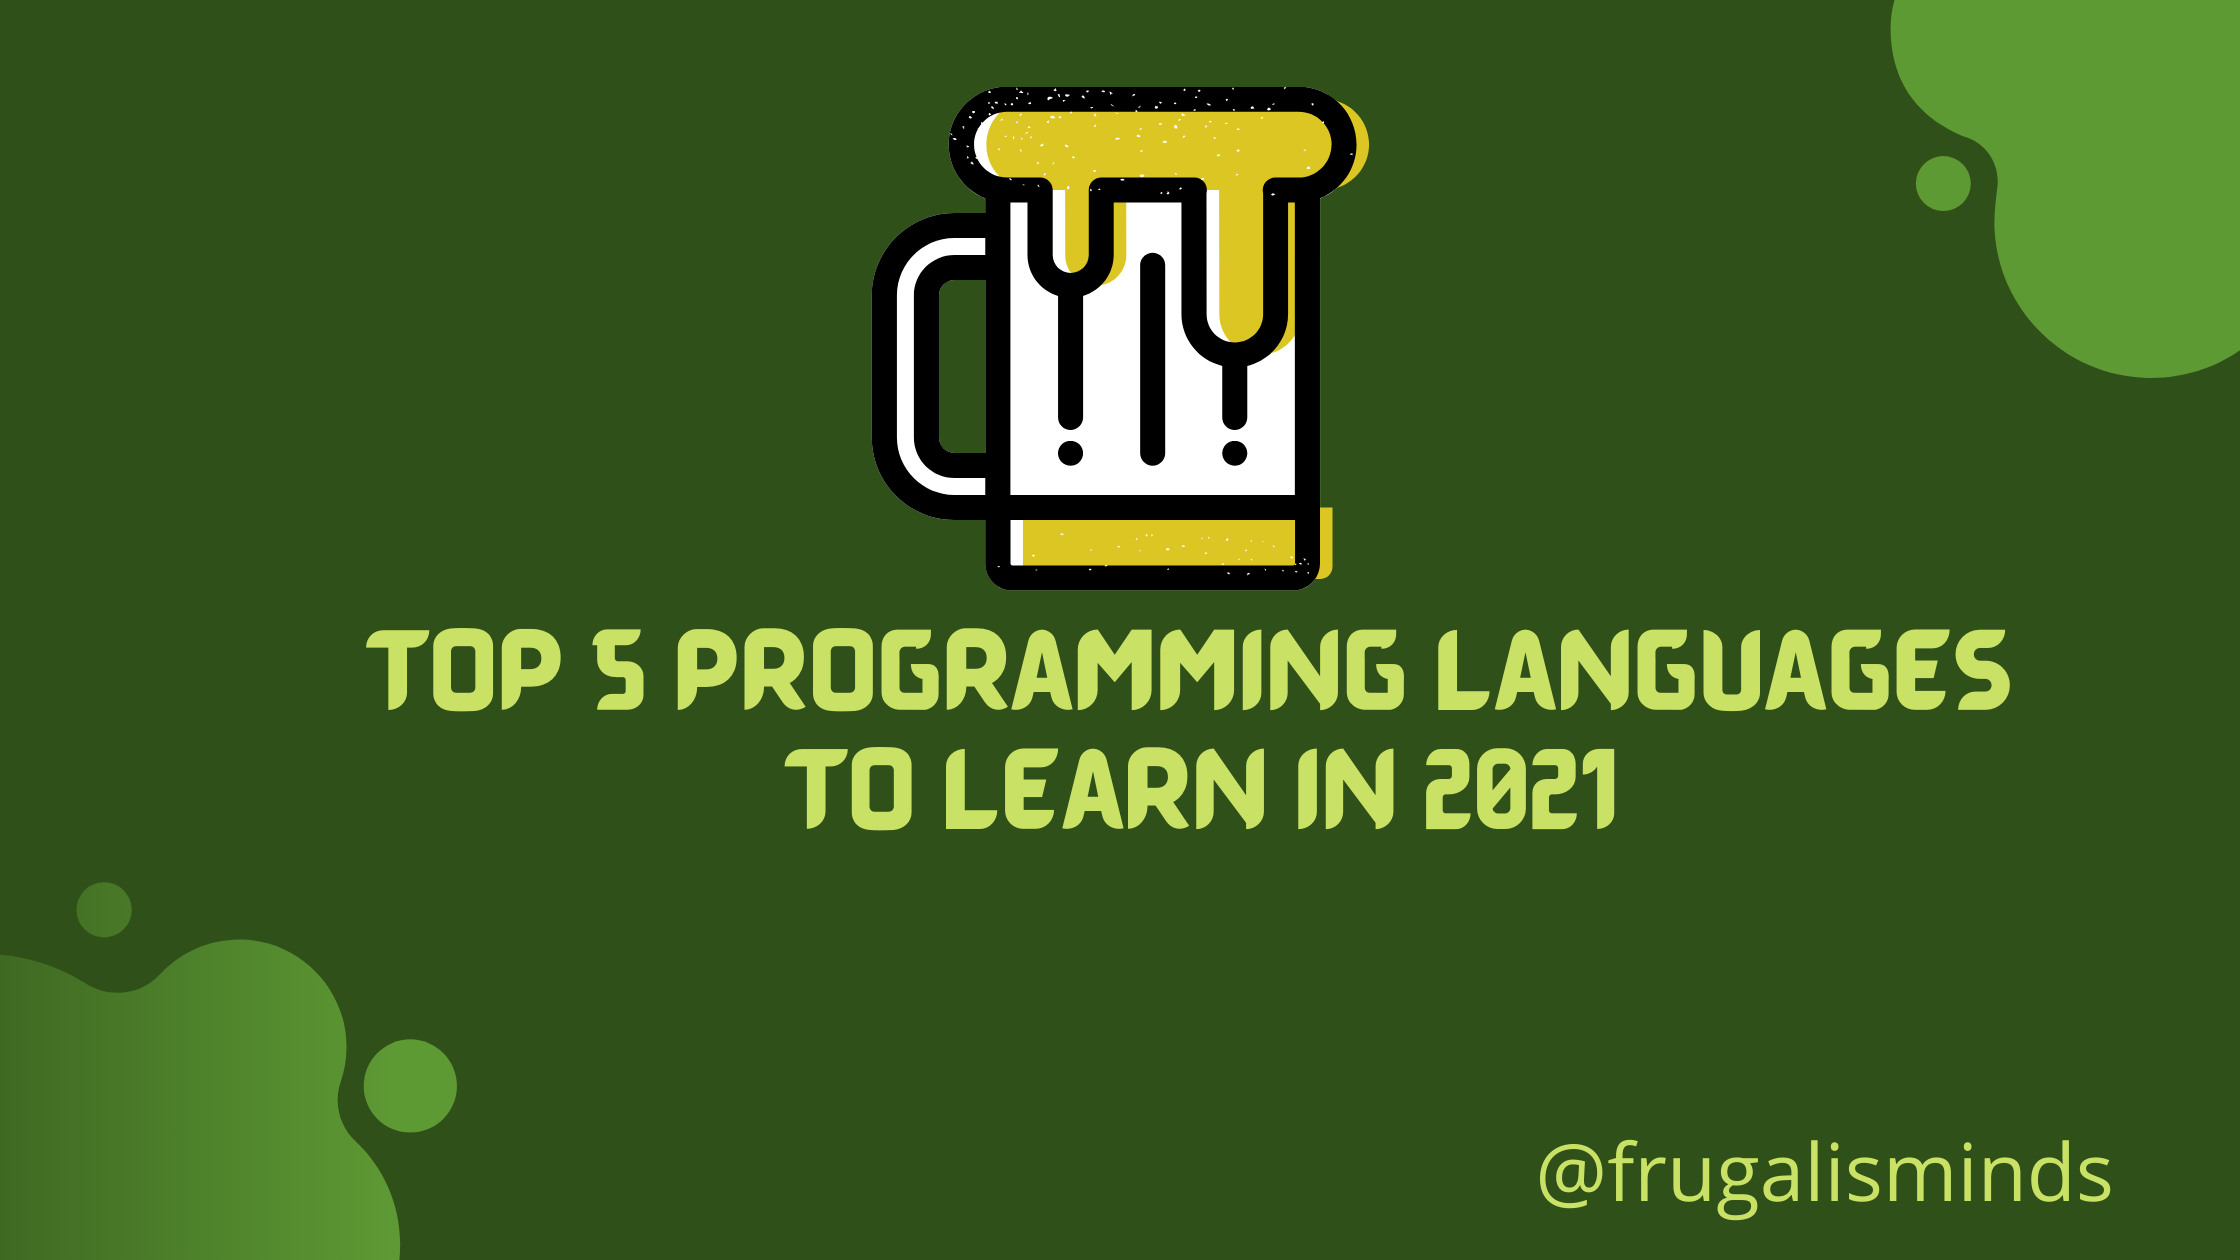 Top 5 Programming Languages to Learn in 2021